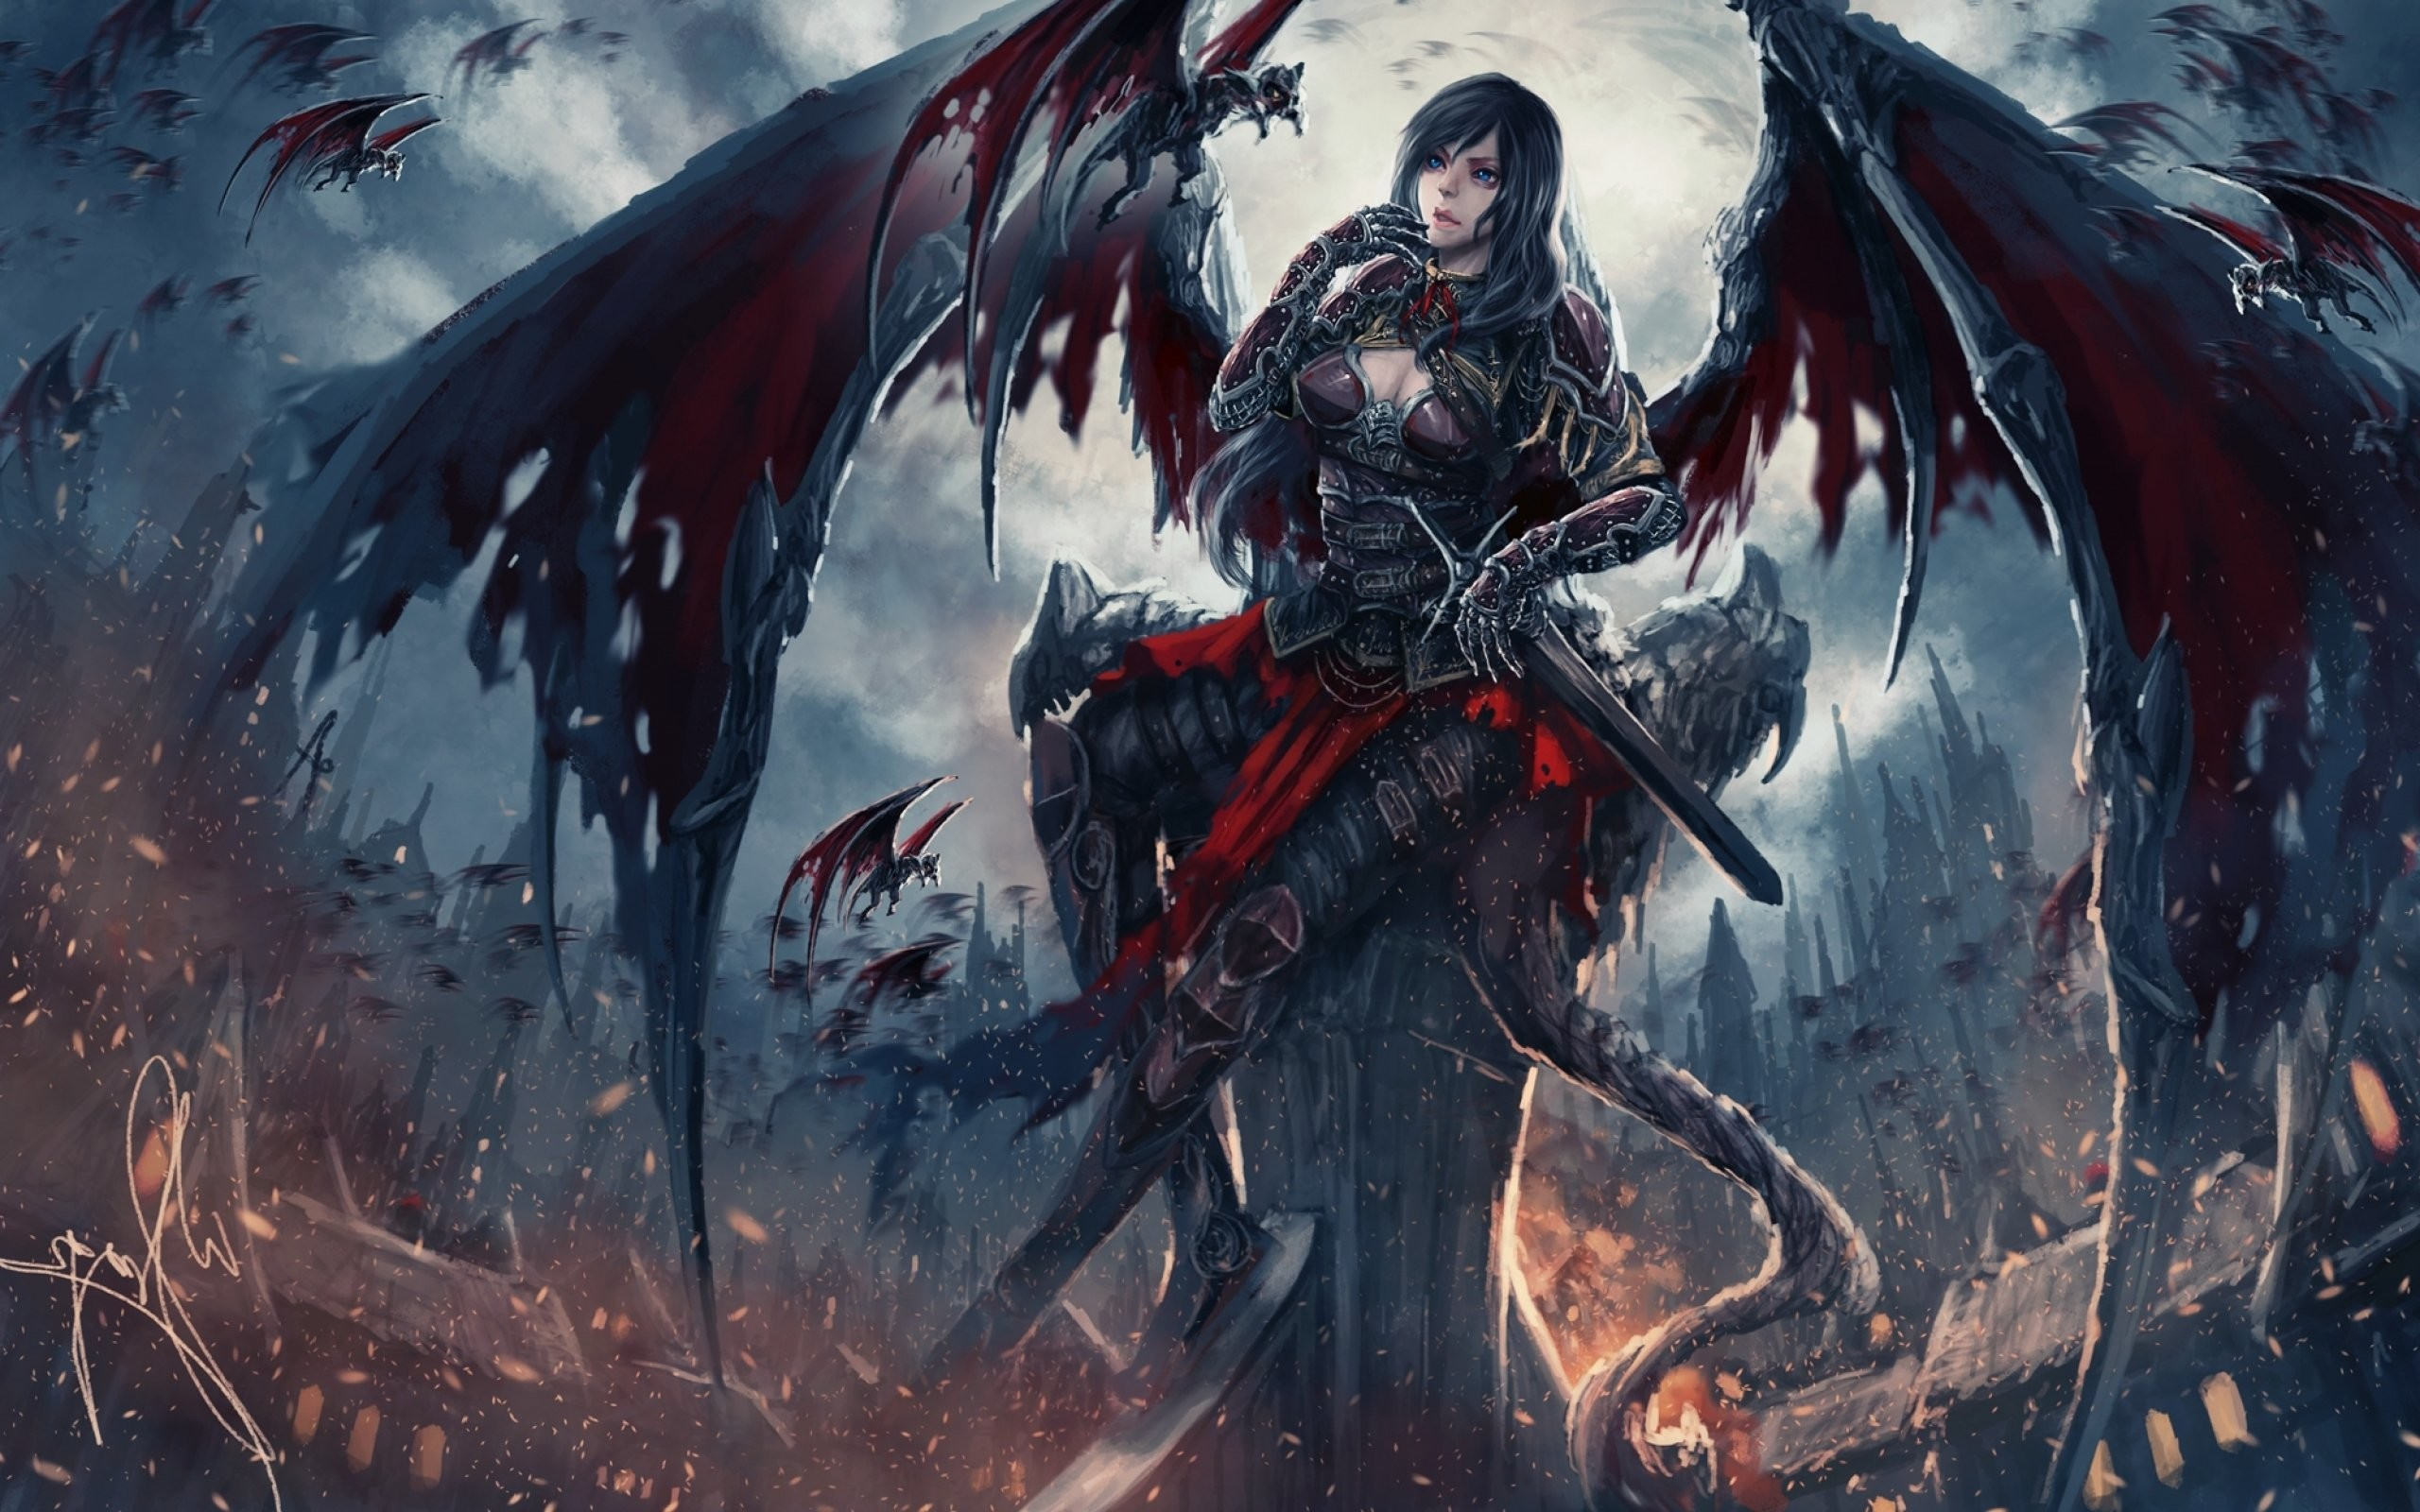 2560x1600 Fantasy Art Artwork Demon Evil Angel Wallpaper At Dark Wallpapers